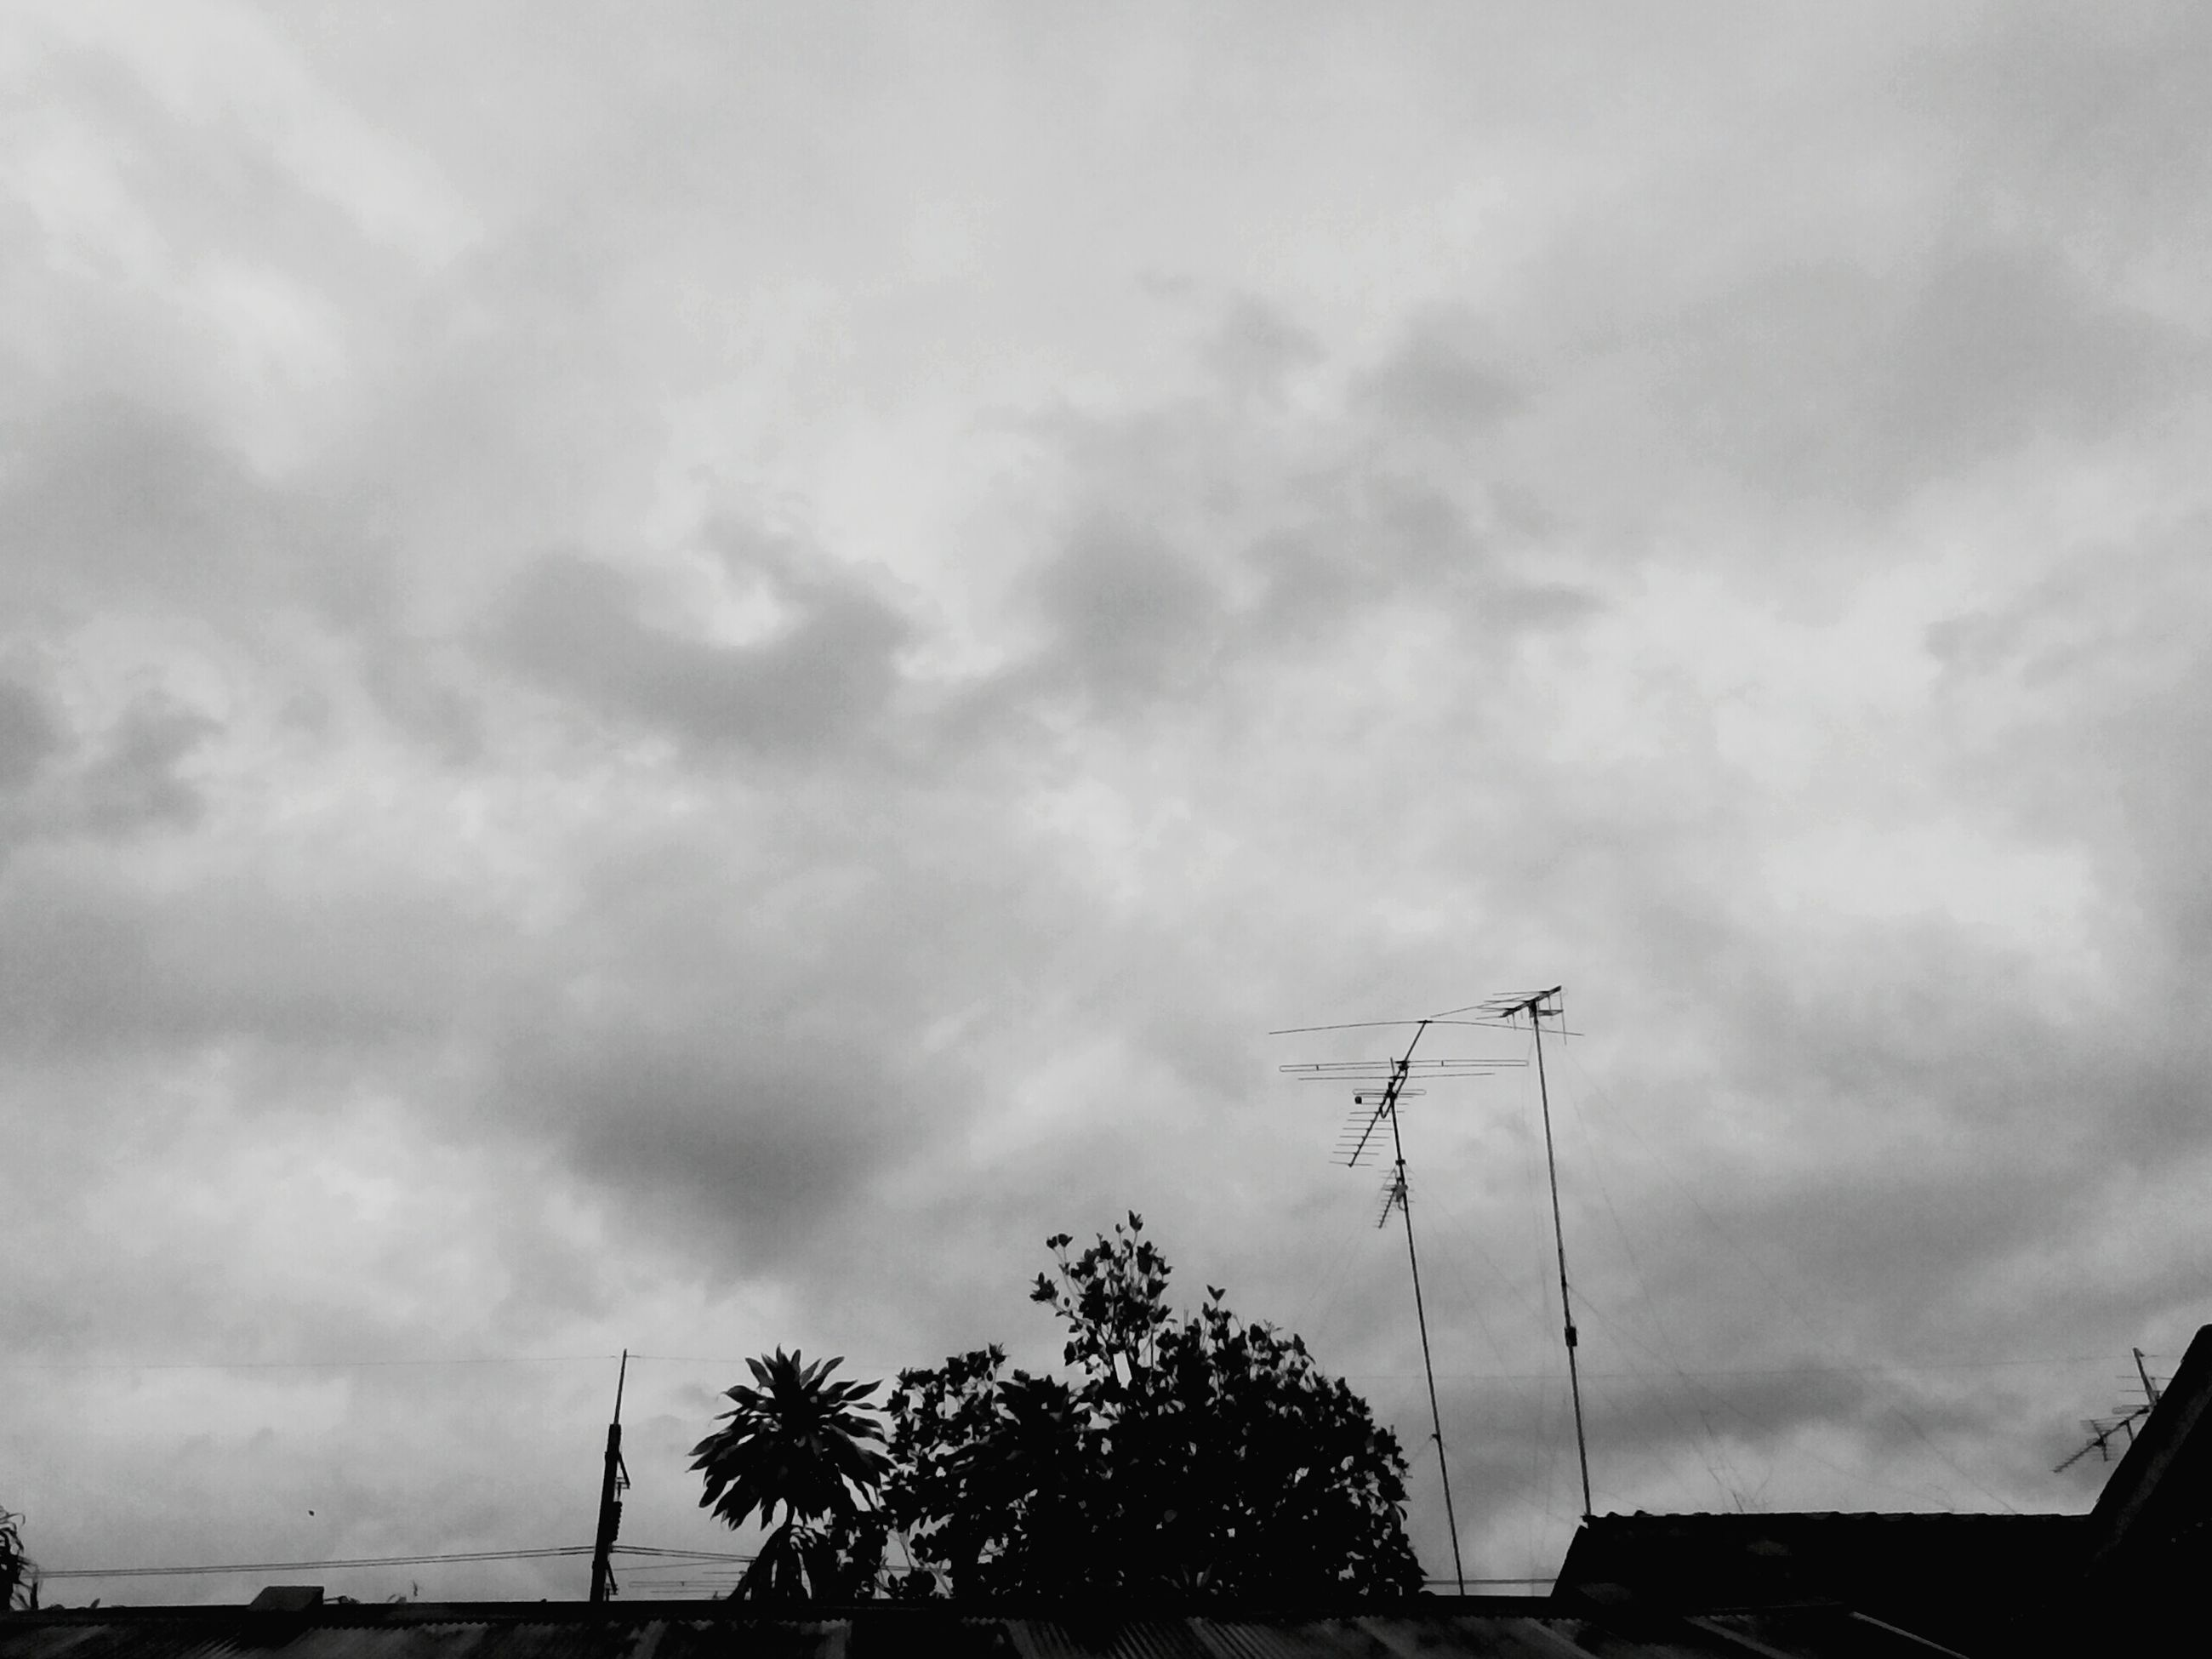 sky, cloud - sky, cloudy, tree, low angle view, transportation, street light, silhouette, car, cloud, road, overcast, weather, nature, land vehicle, mode of transport, street, outdoors, electricity pylon, built structure